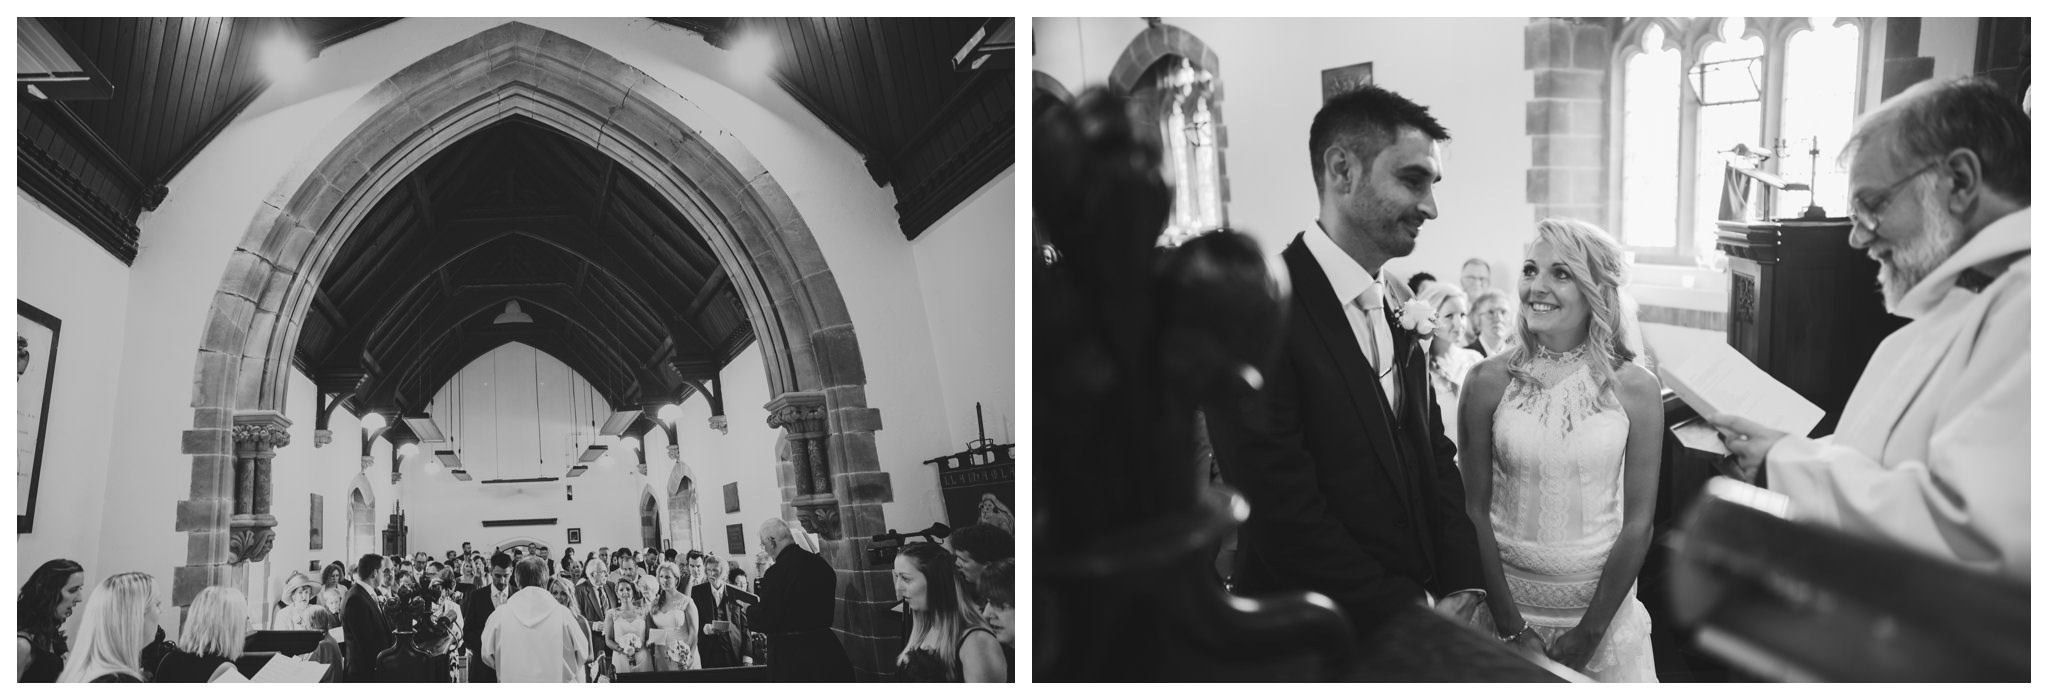 Richard Savage Photography - Wedding - Peterstone Court Brecon - 2016-05-11_0025